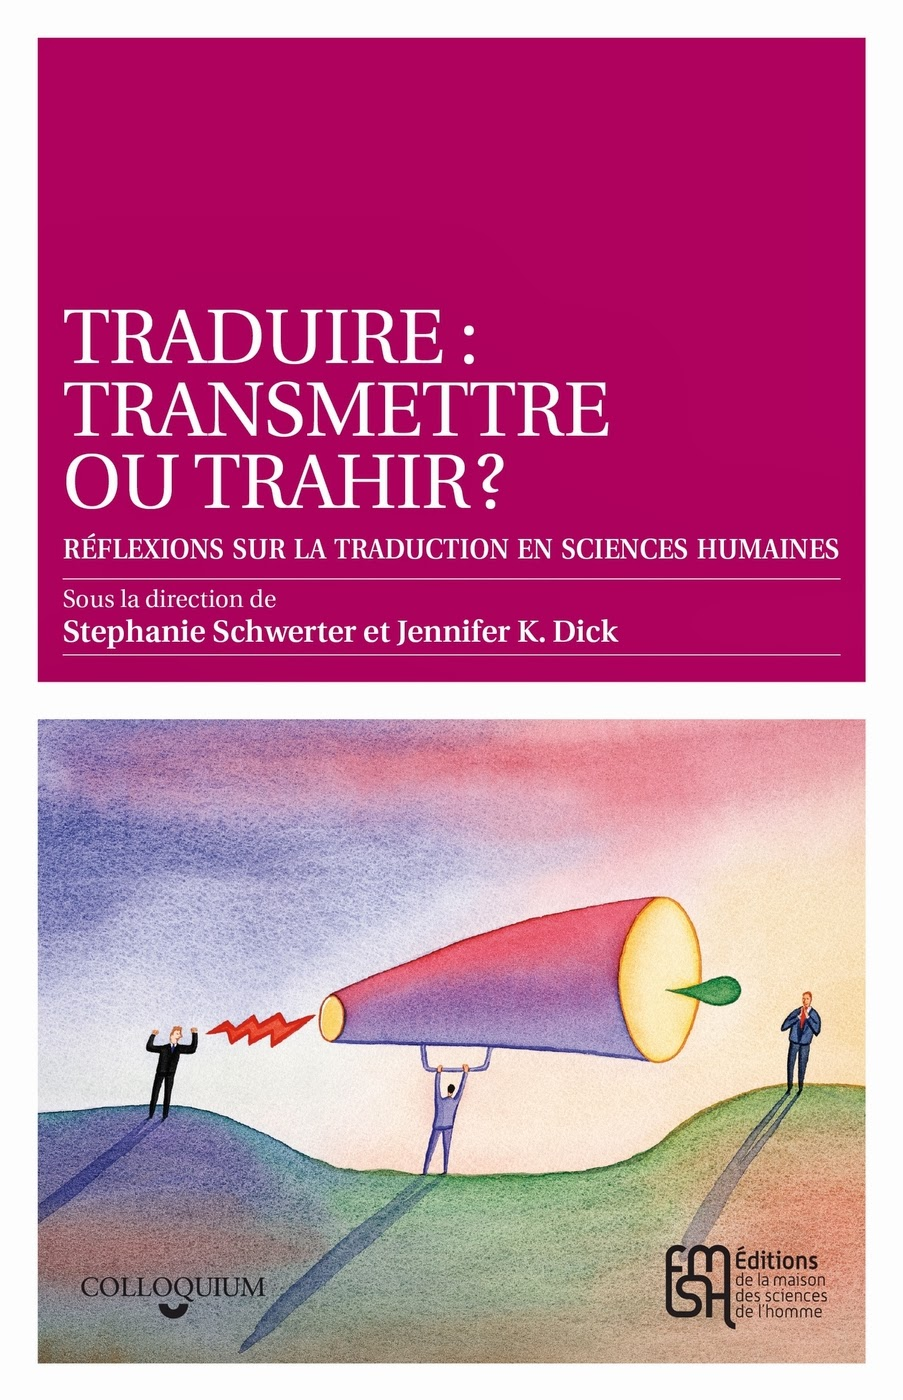 MARCH 11 event for TRADUIRE: transmettre ou trahir?  Edited by Jennifer K Dick & Stephanie Schweter